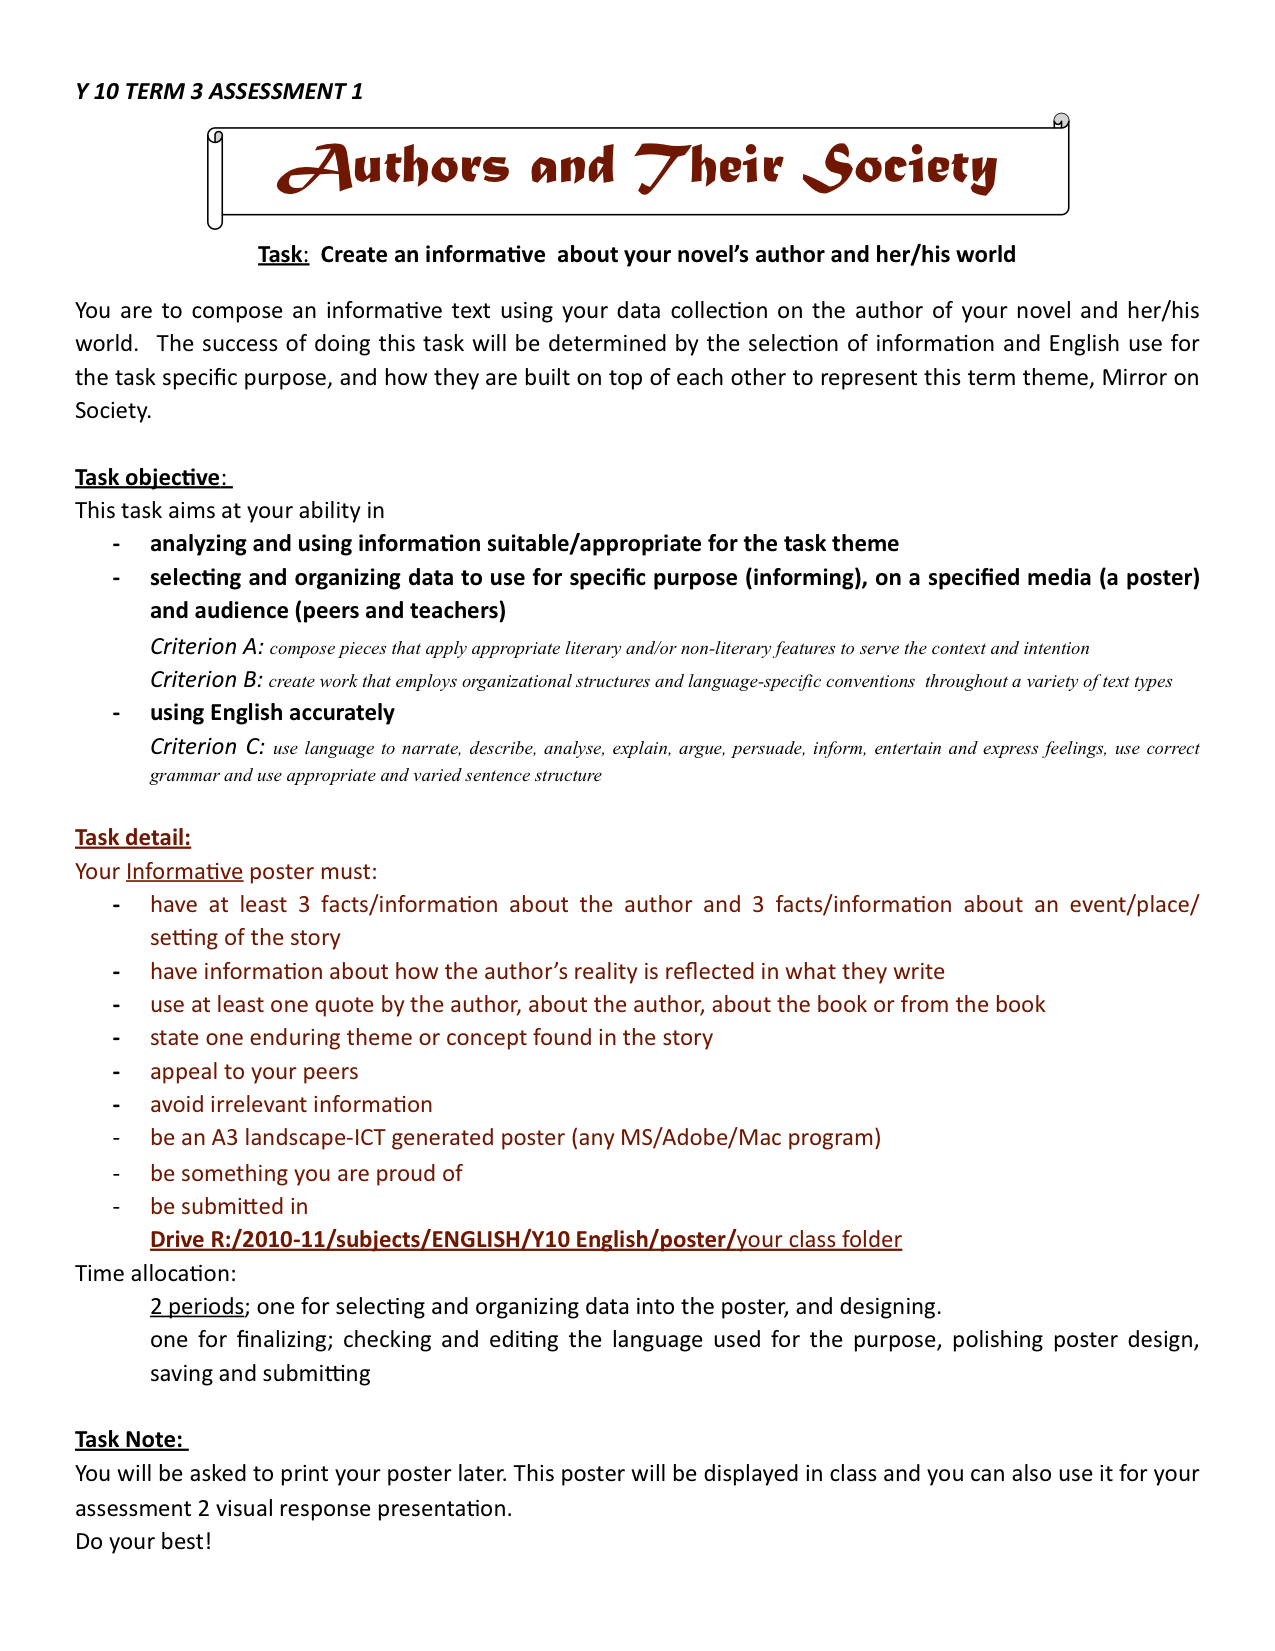 cometic surgery expository essay We have got a perfectly written paper example, on the topic of plastic surgery  use the given sample to create a strong essay on your own effortlessly.